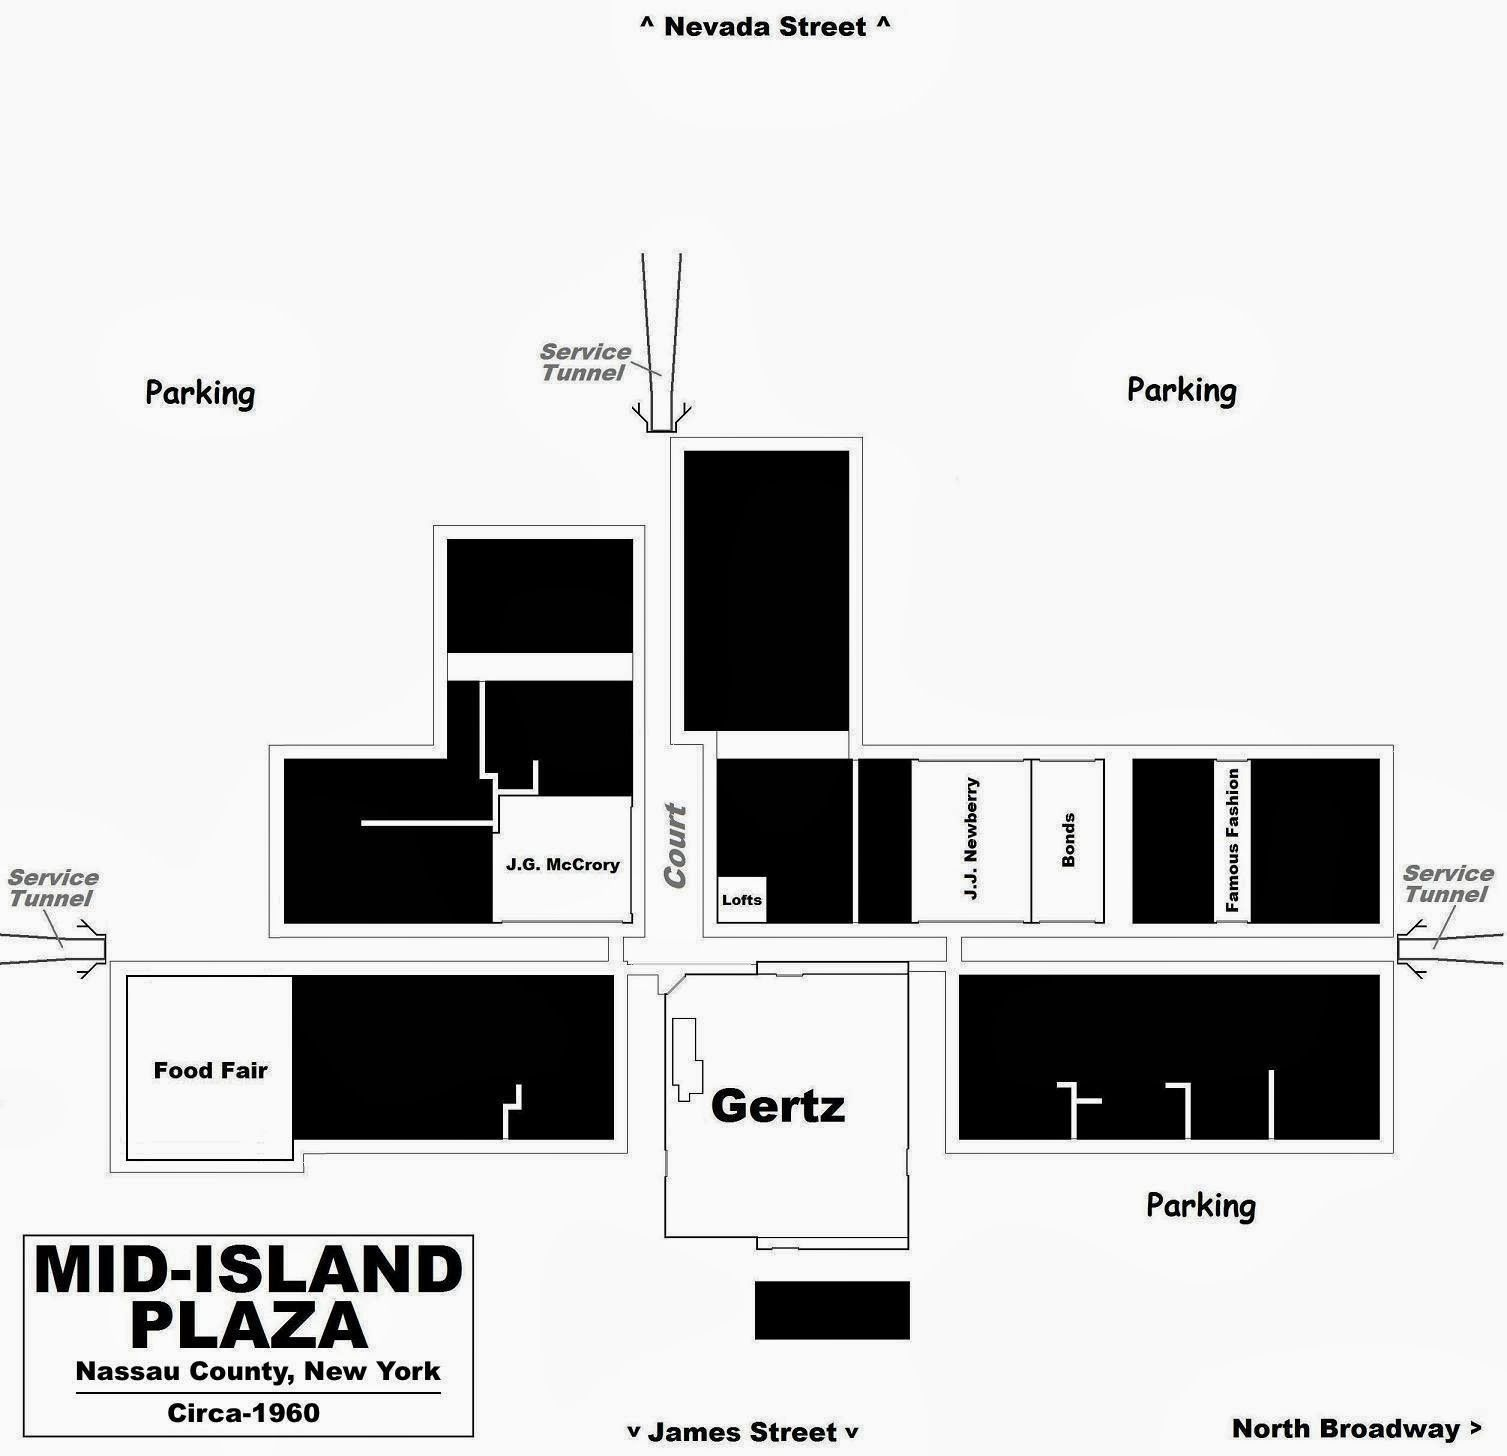 96f053961 MALL HALL OF FAME: December 2007 | Years gone by | Floor plans, Mall ...